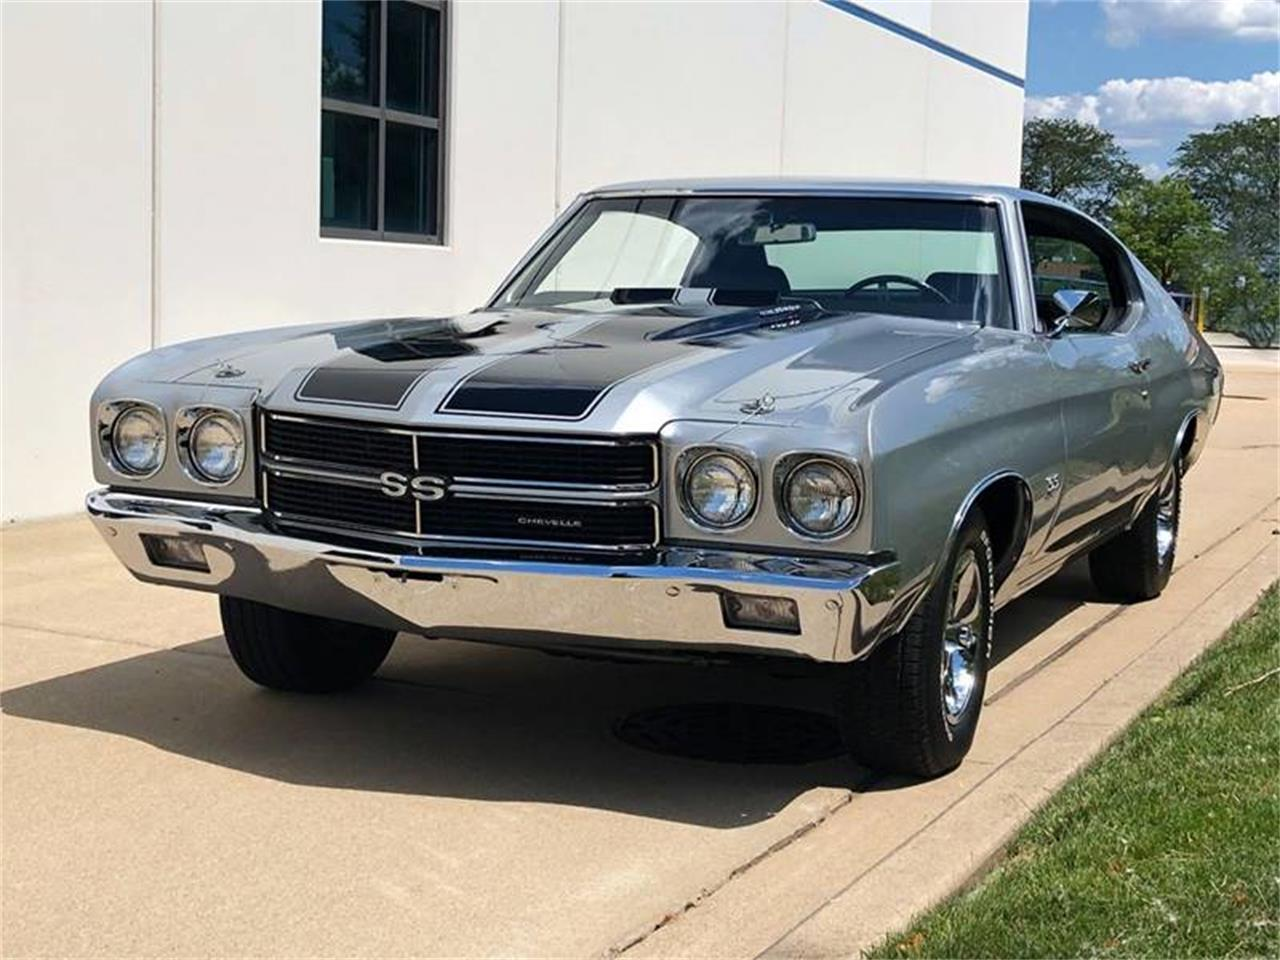 Large Picture of '70 Chevrolet Chevelle SS - $144,990.00 - QHCD